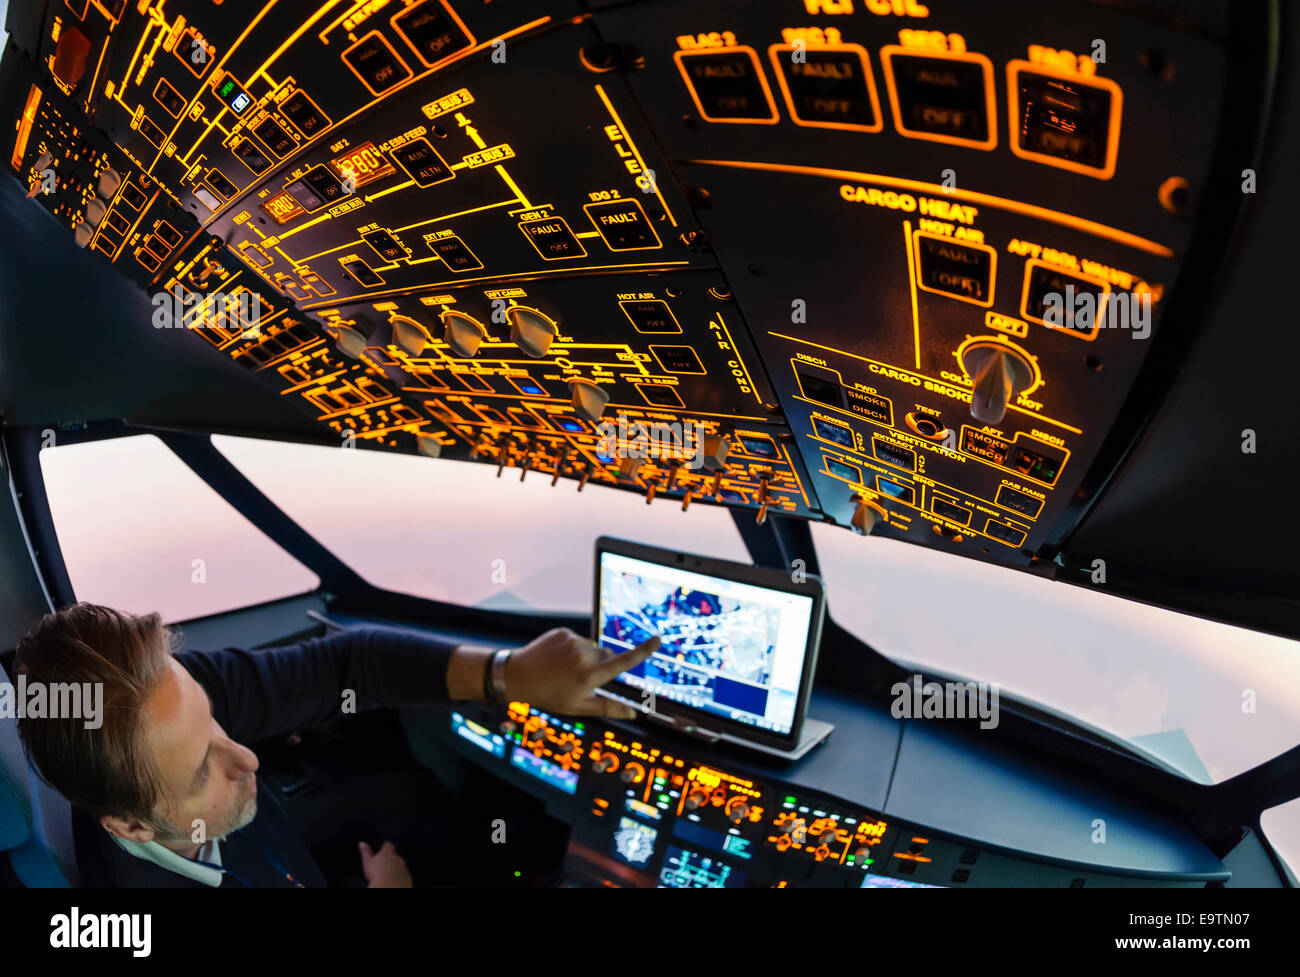 Cockpit of an Airbus A320 flight simulator that is used for training of professional airline pilots (pilot programming - Stock Image